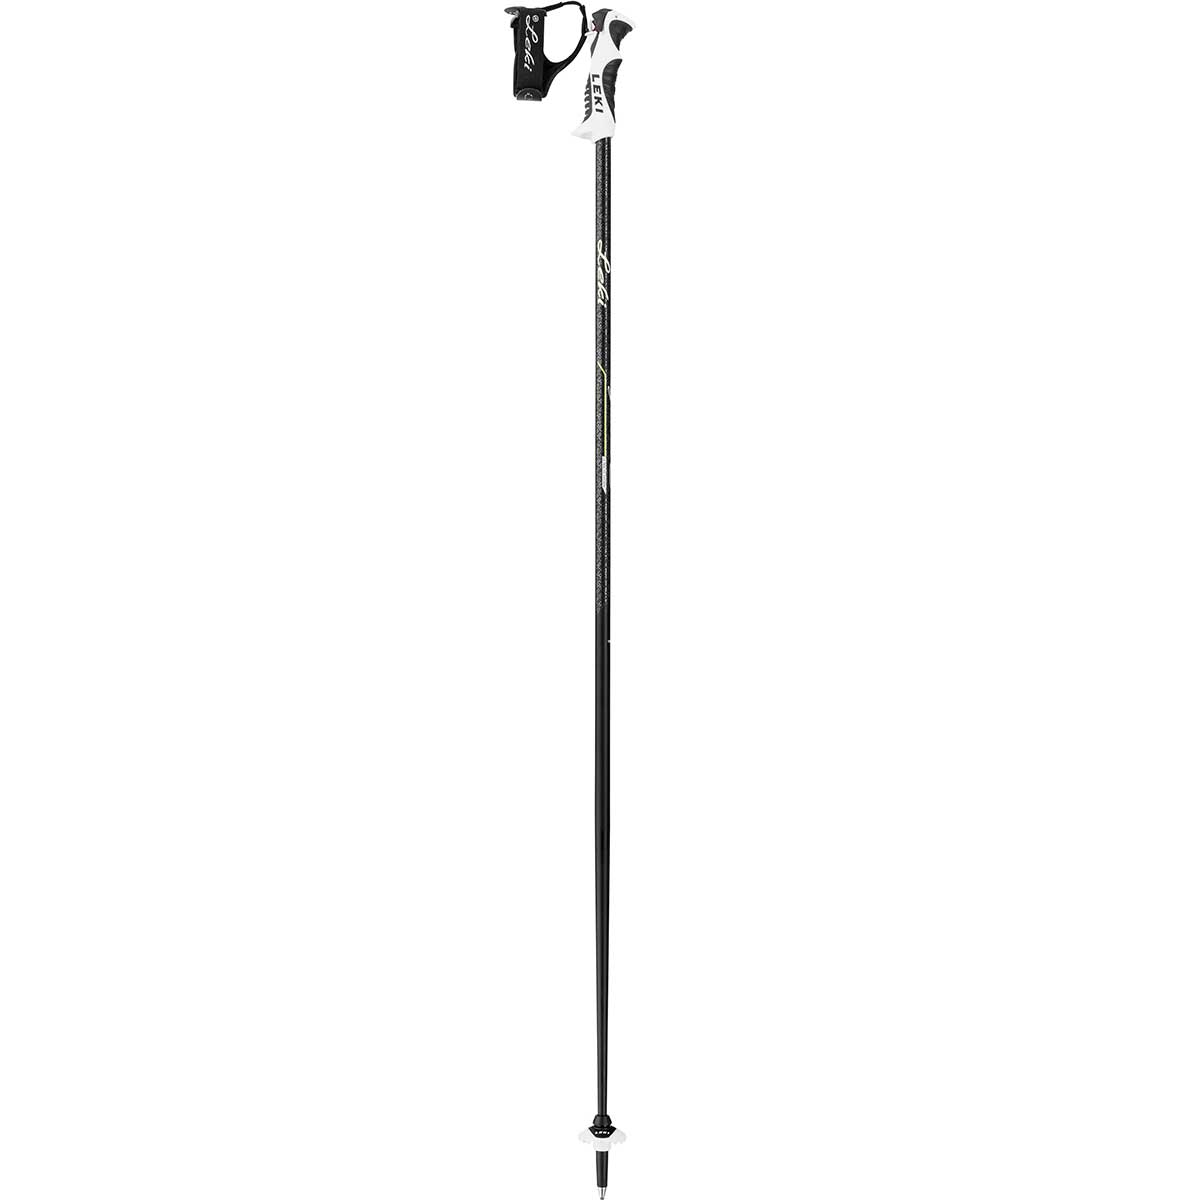 Leki Giulia S women's ski pole in black anthracite green